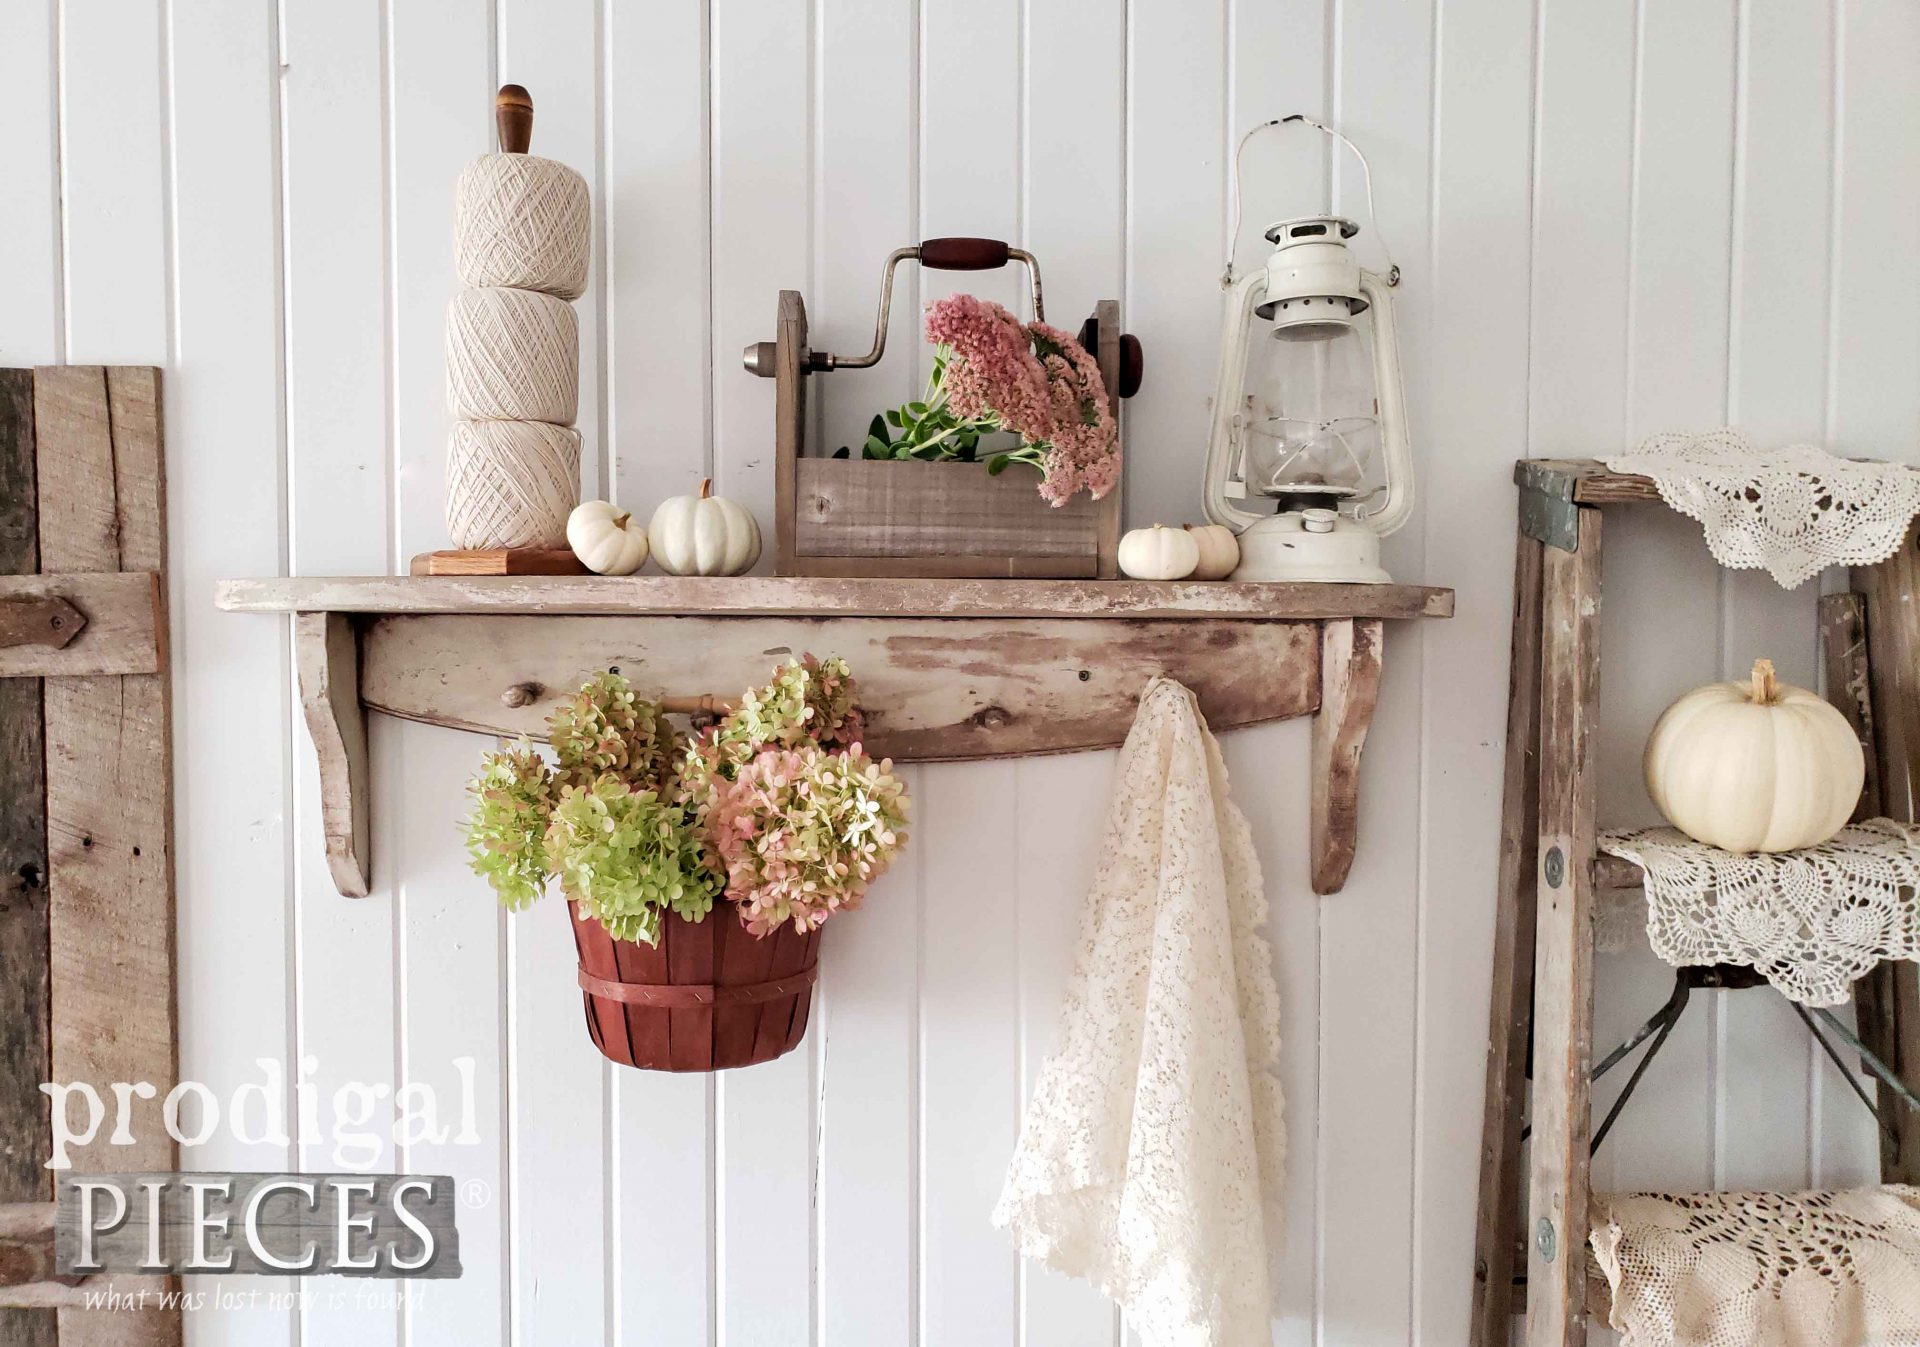 Simple Farmhouse Autumn Decor made from thrifted finds by Larissa of Prodigal Pieces | prodigalpieces.com #prodigalpieces #farmhouse #home #homedecor #fall